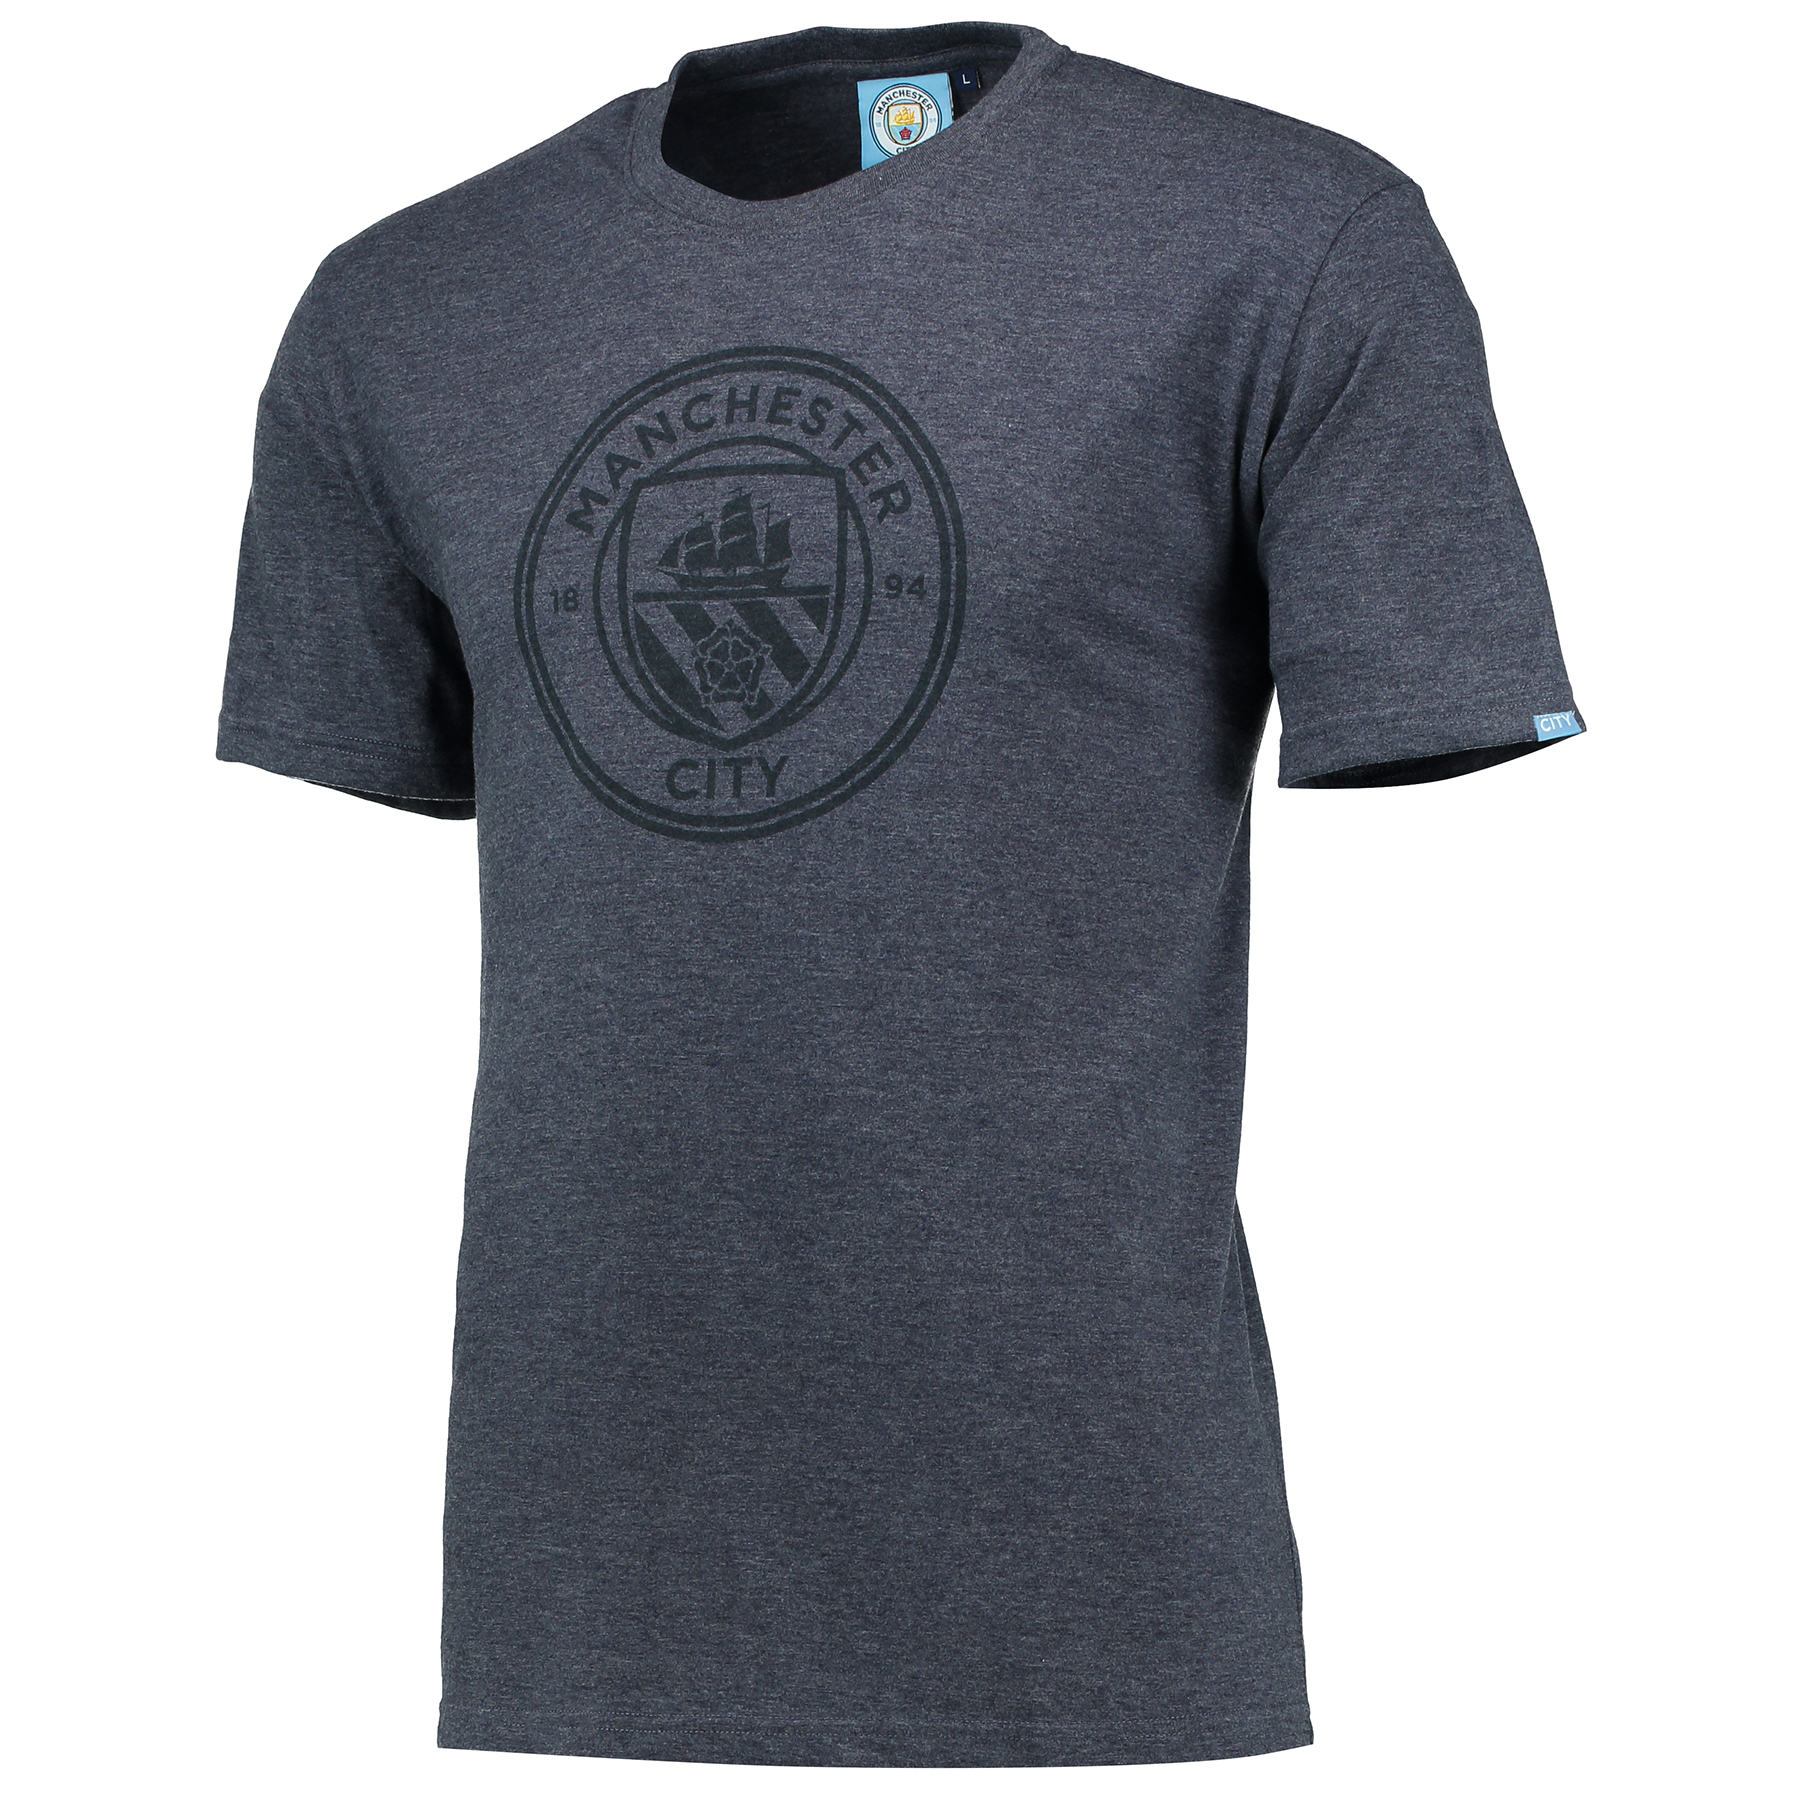 Manchester City Printed Crest T-Shirt - Navy Marl